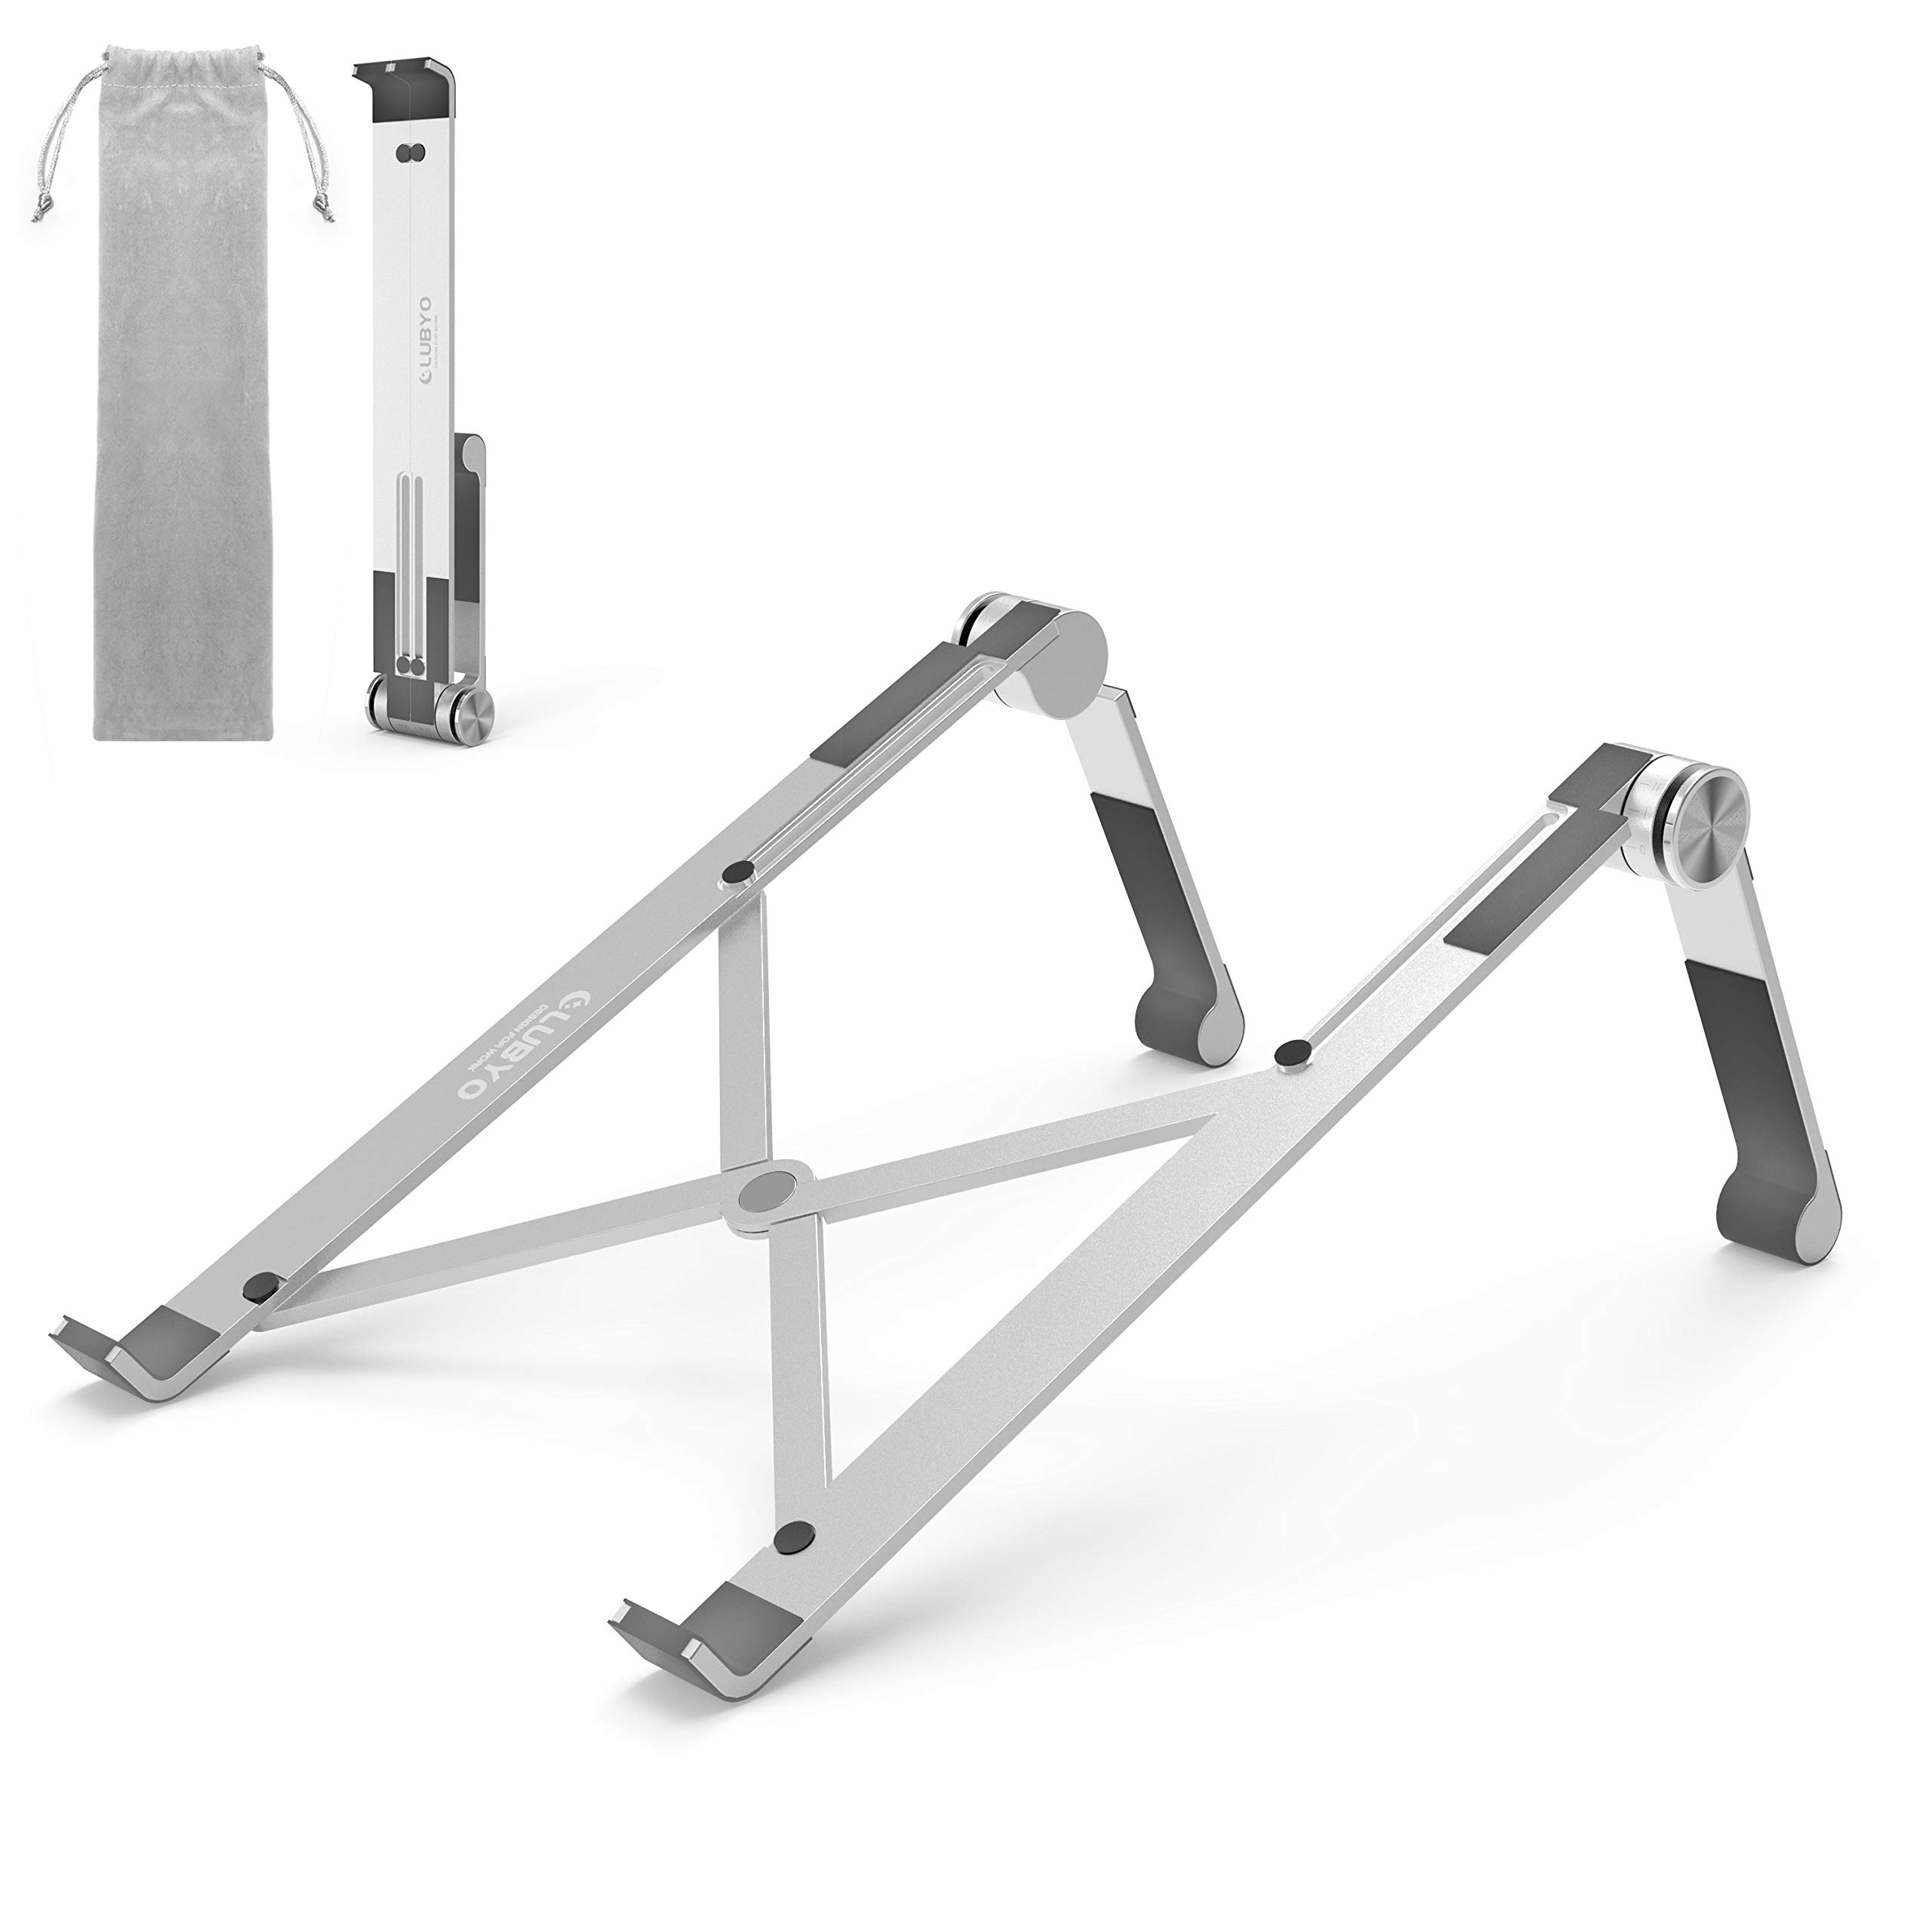 """Laptop Stand for Desk, Clubyo Adjustable Ergonomic Portable Foldable Aluminum Computer Riser Holder,Compatible with MacBook Air, Pro, Lenovo, Thinkpad, Dell, HP, Acer, ASUS 10-15.6"""" Notebook, Silver"""